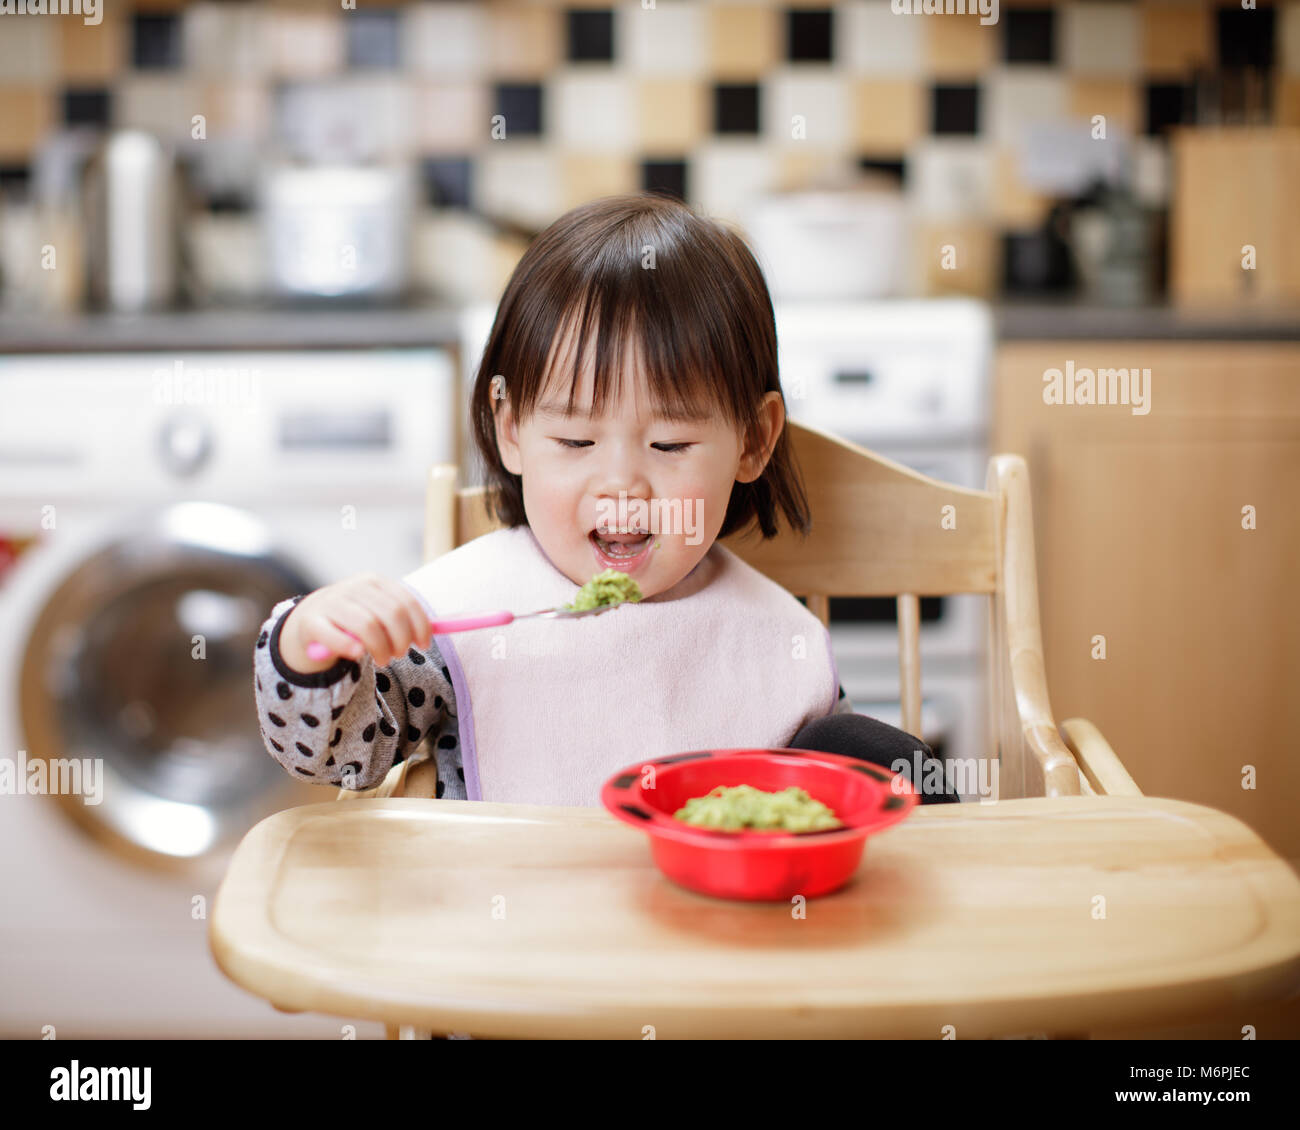 Messy Kitchen Catering: Japanese Kids Eating Stock Photos & Japanese Kids Eating